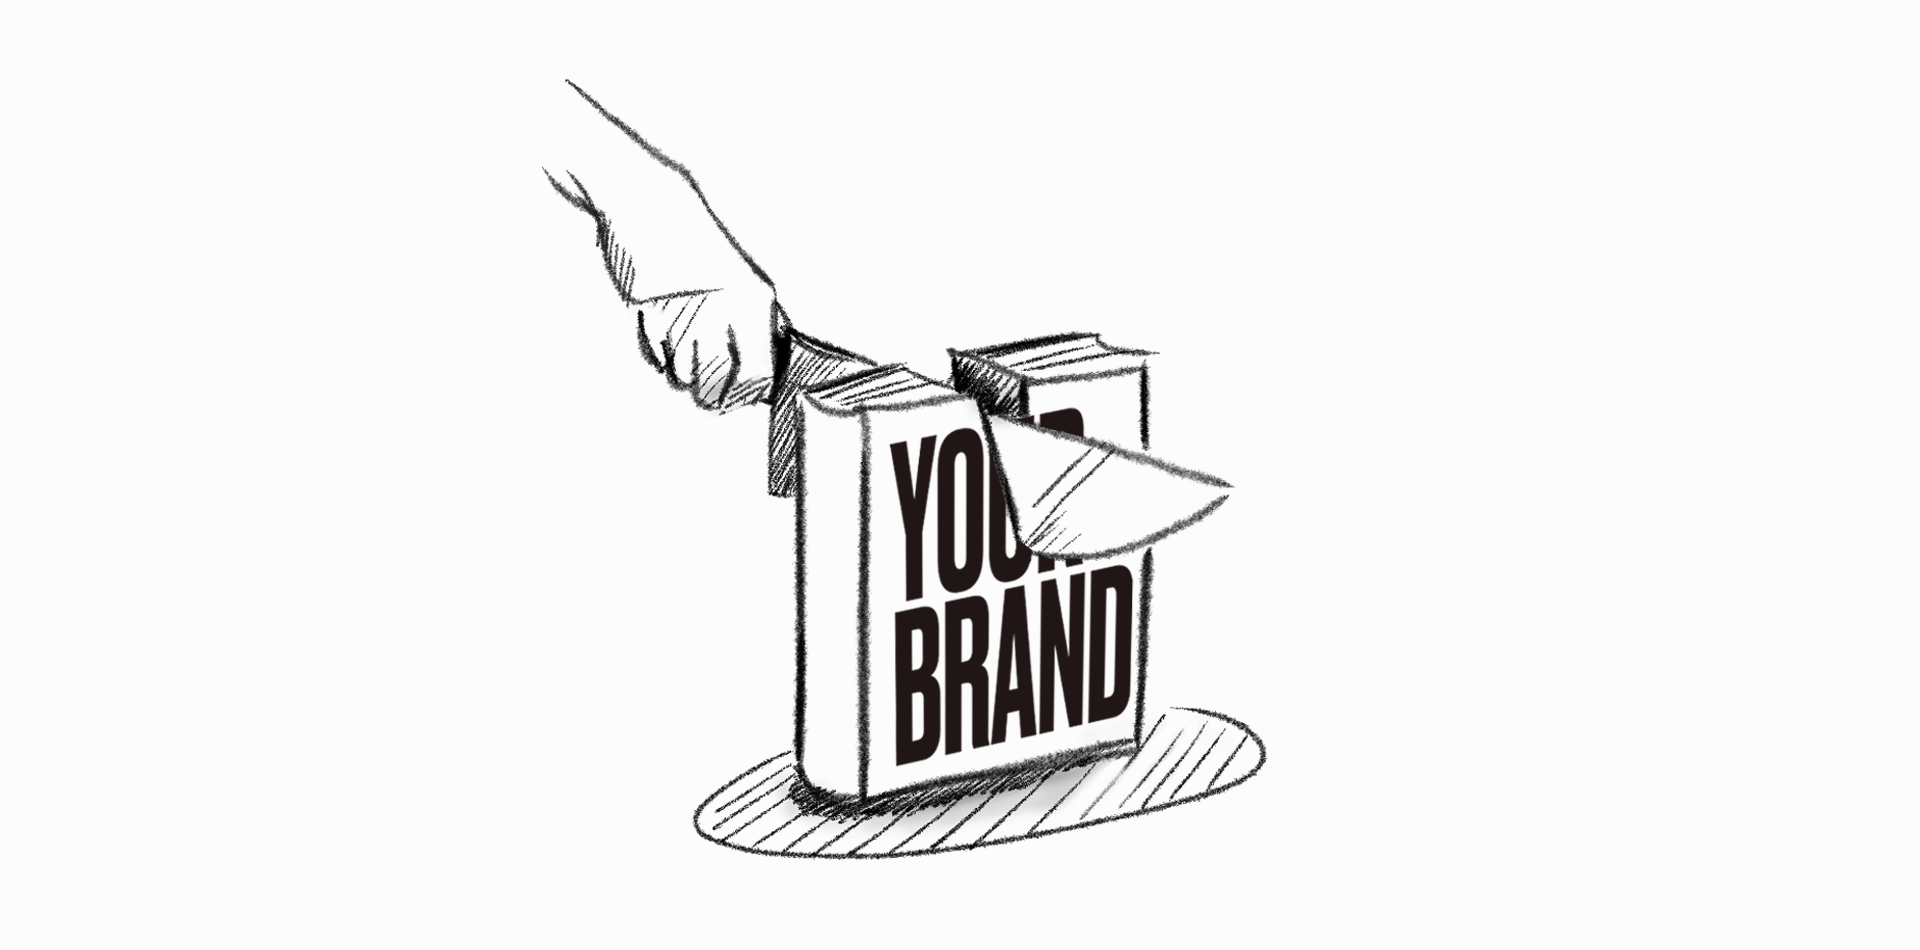 How to be relevant? Chunk your brand's message - The Startup - Medium